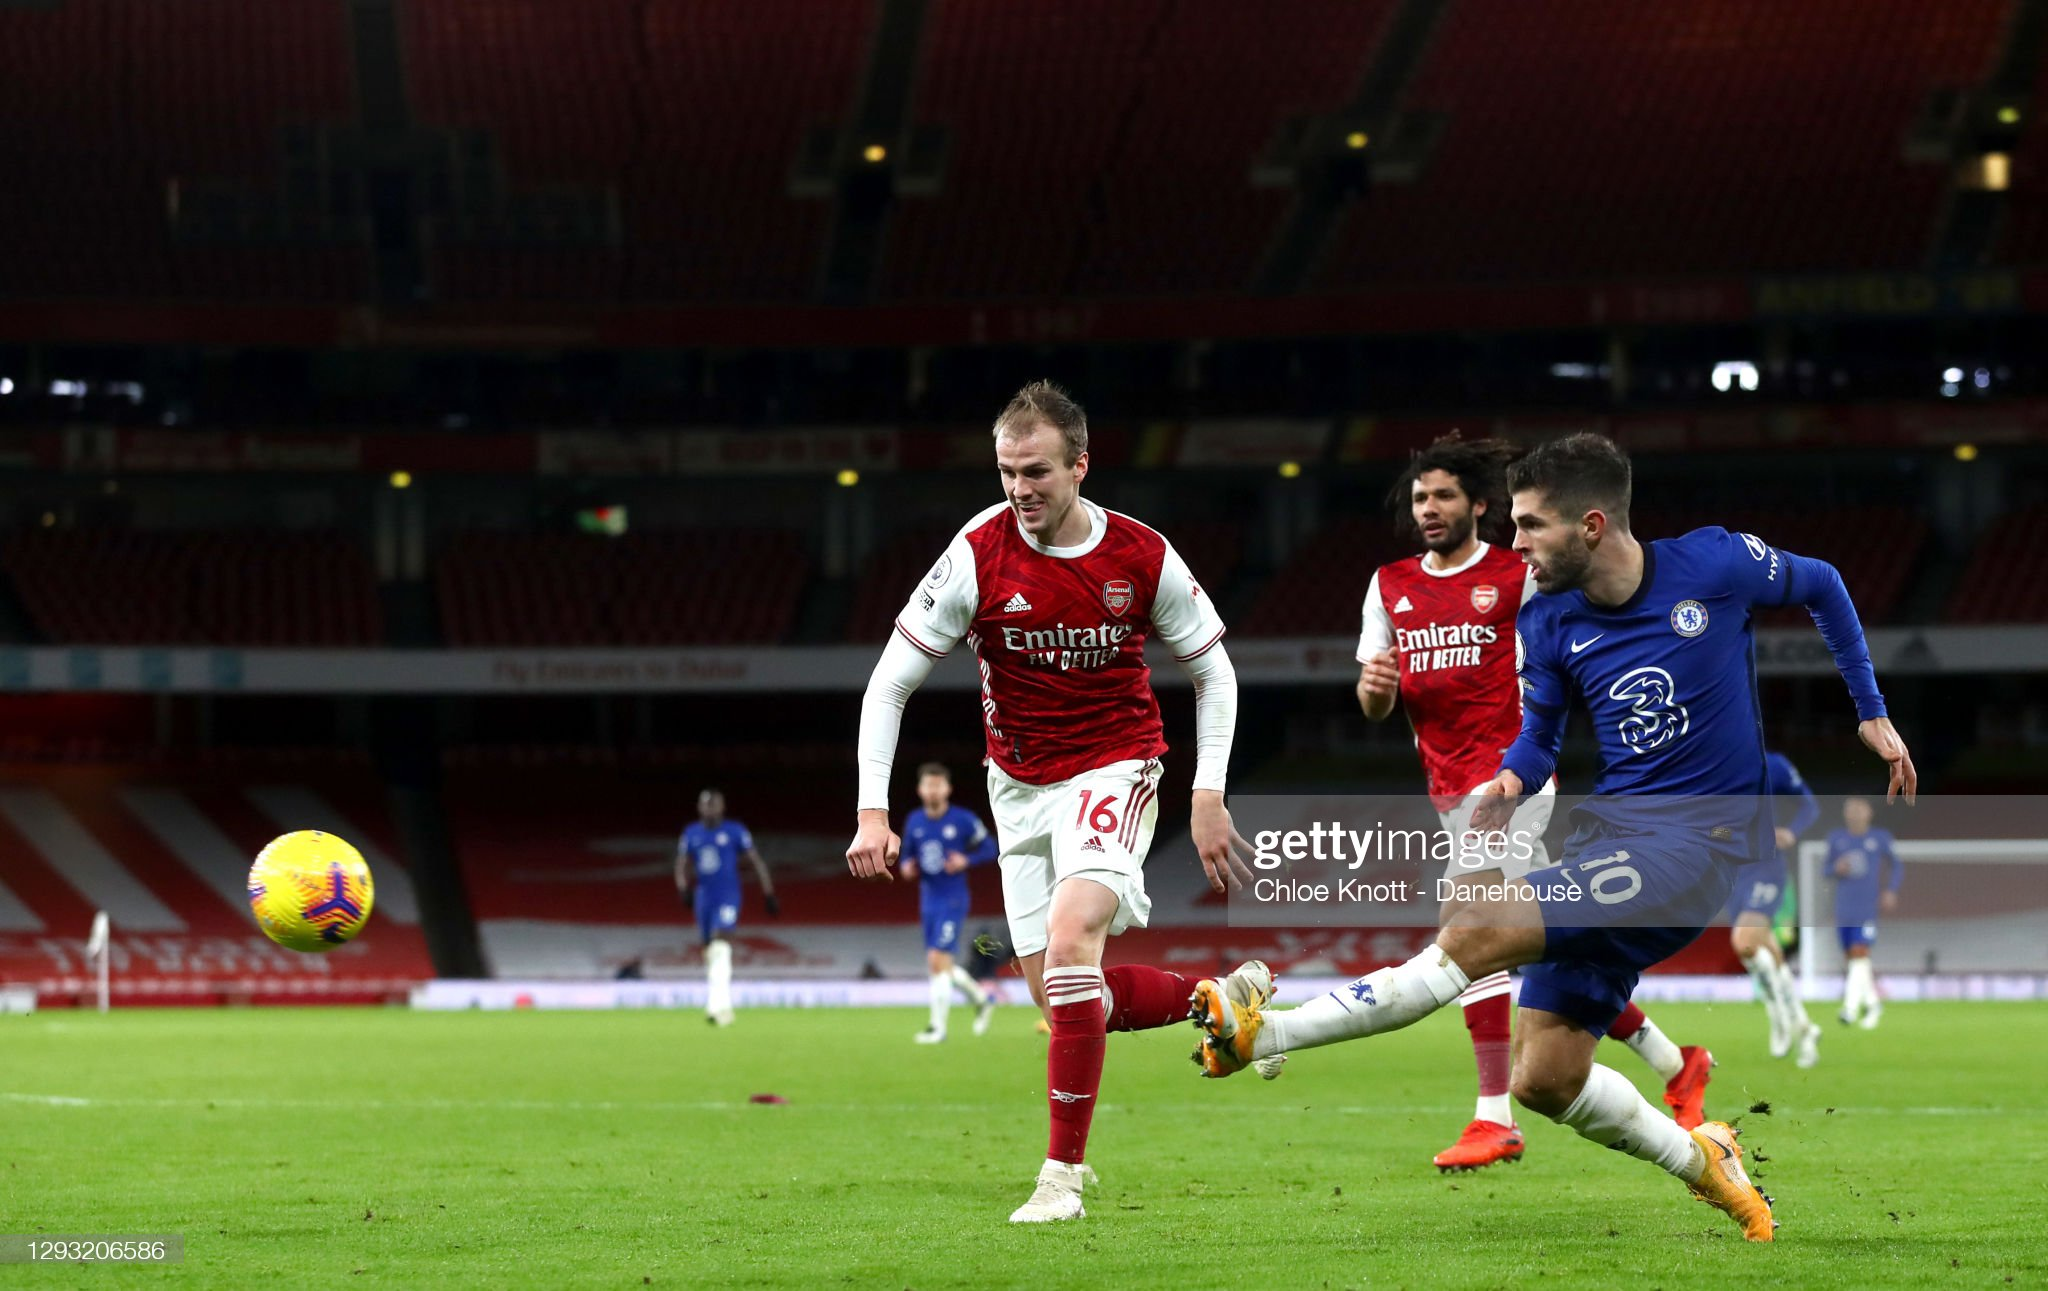 Chelsea vs Arsenal Preview, prediction and odds